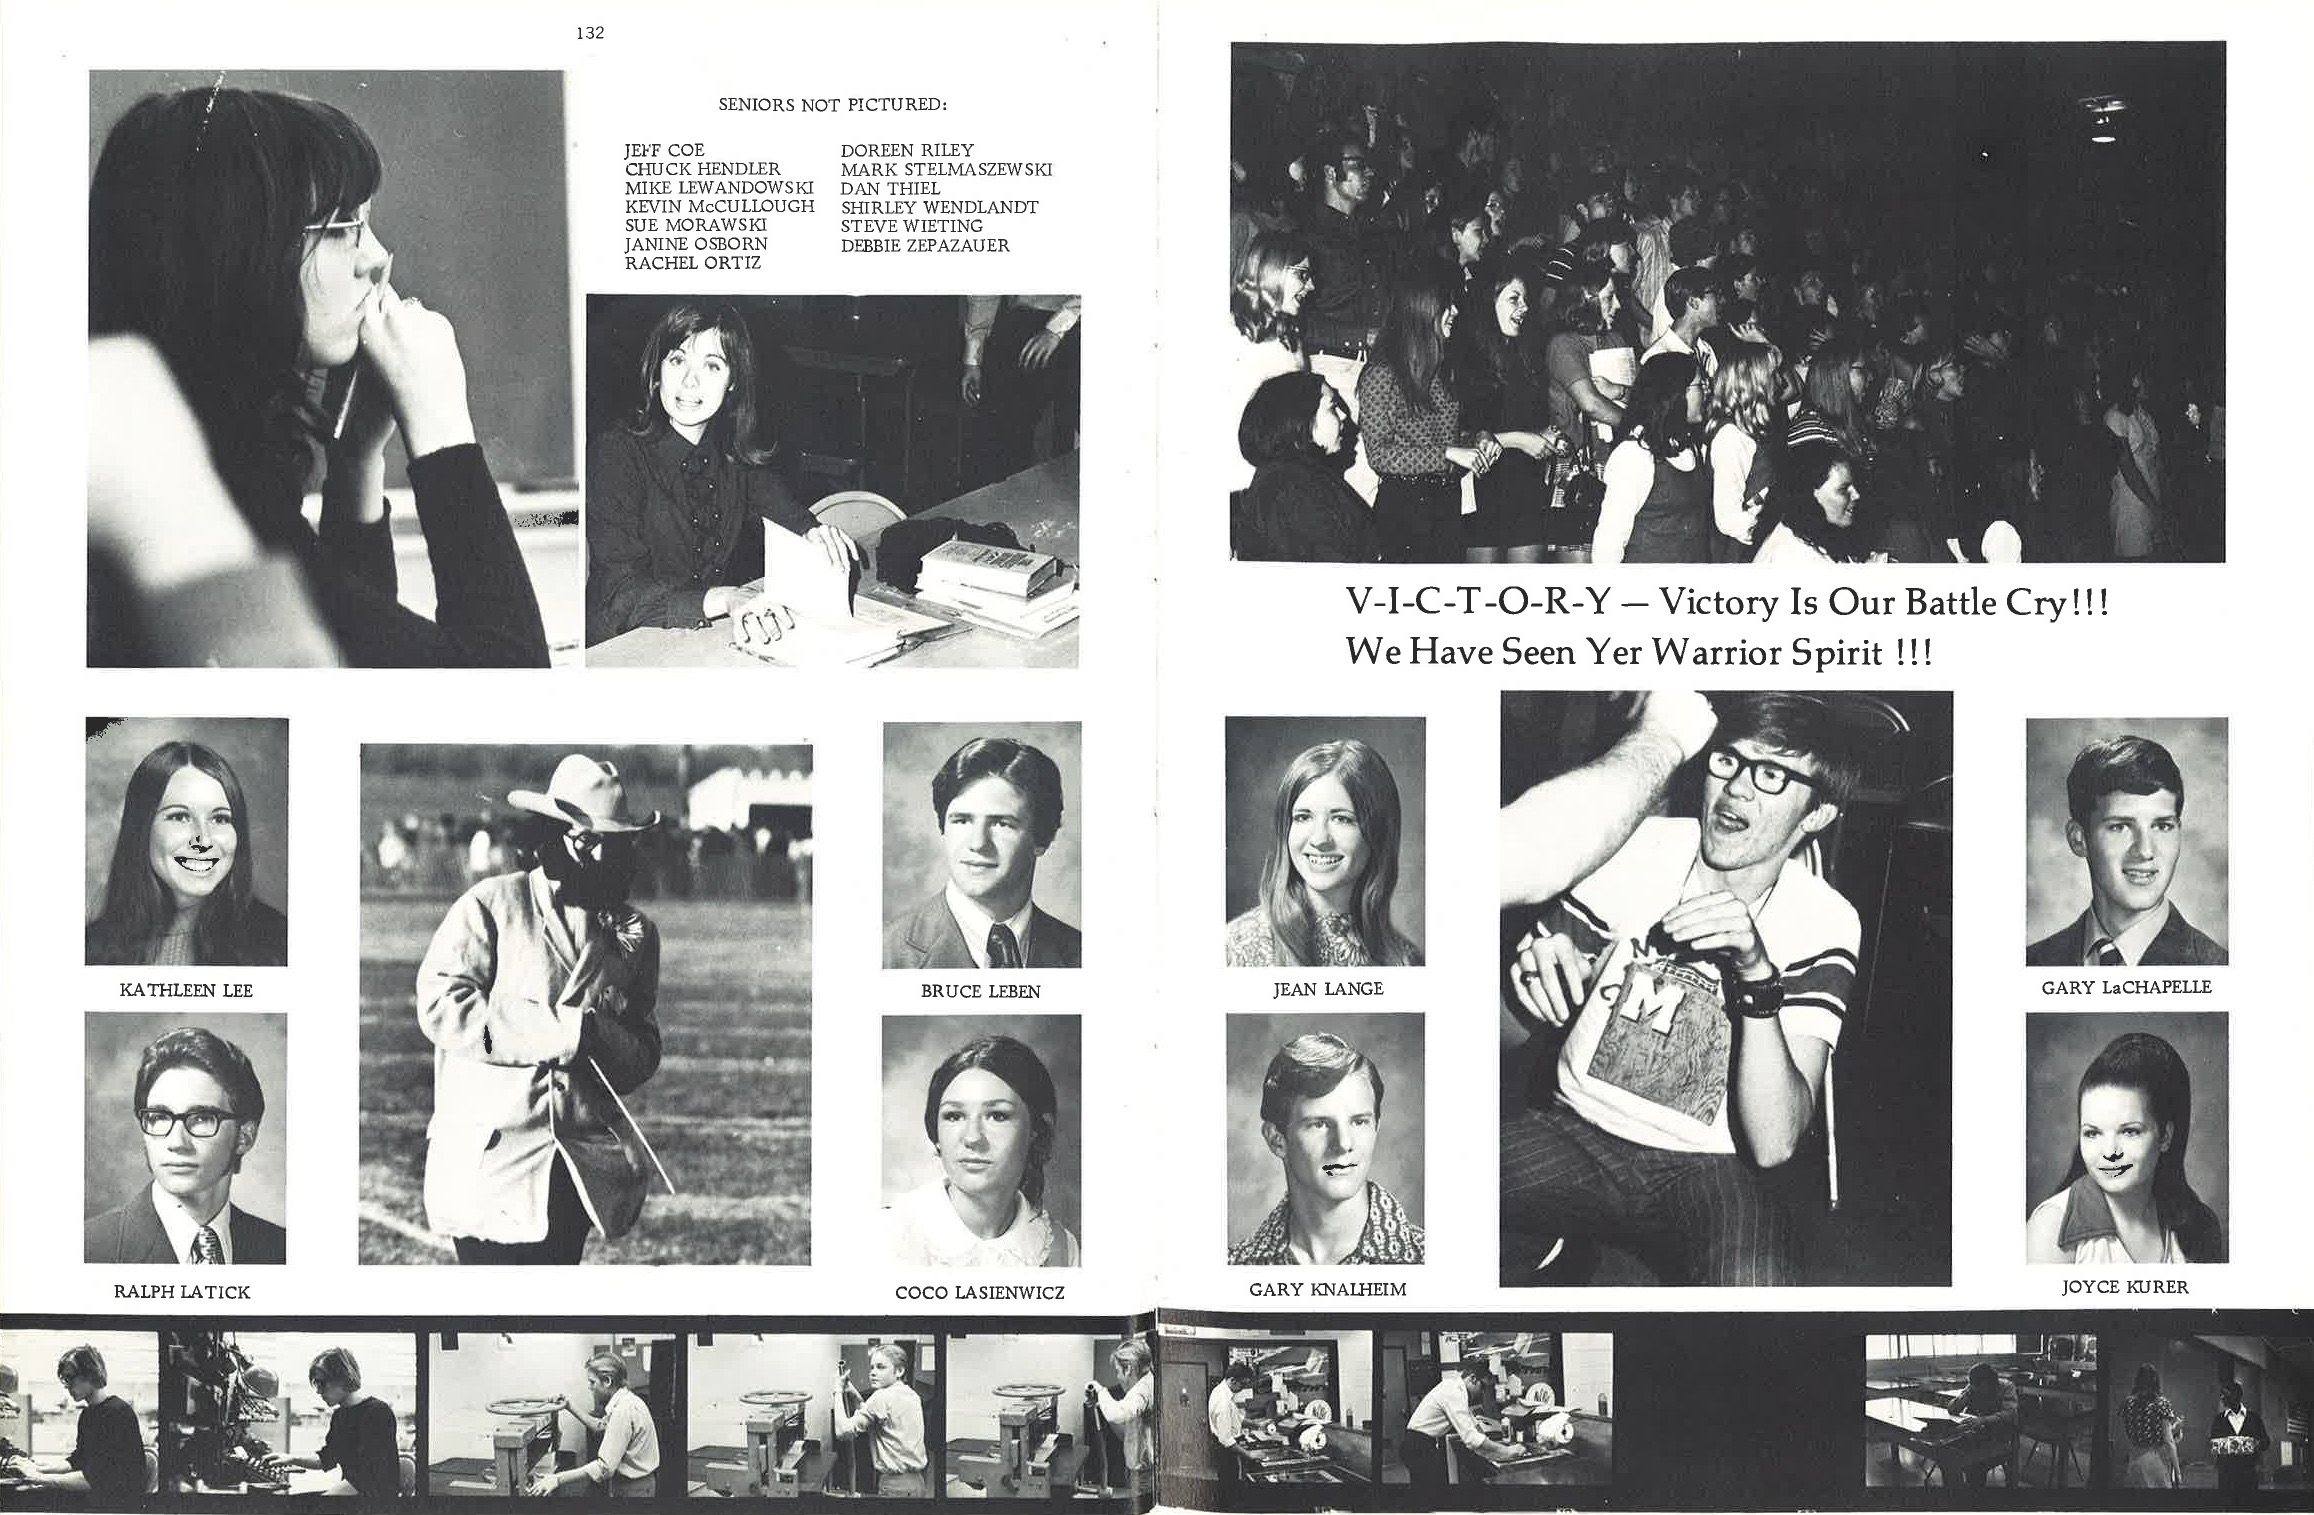 1972_Yearbook_132-133.jpg